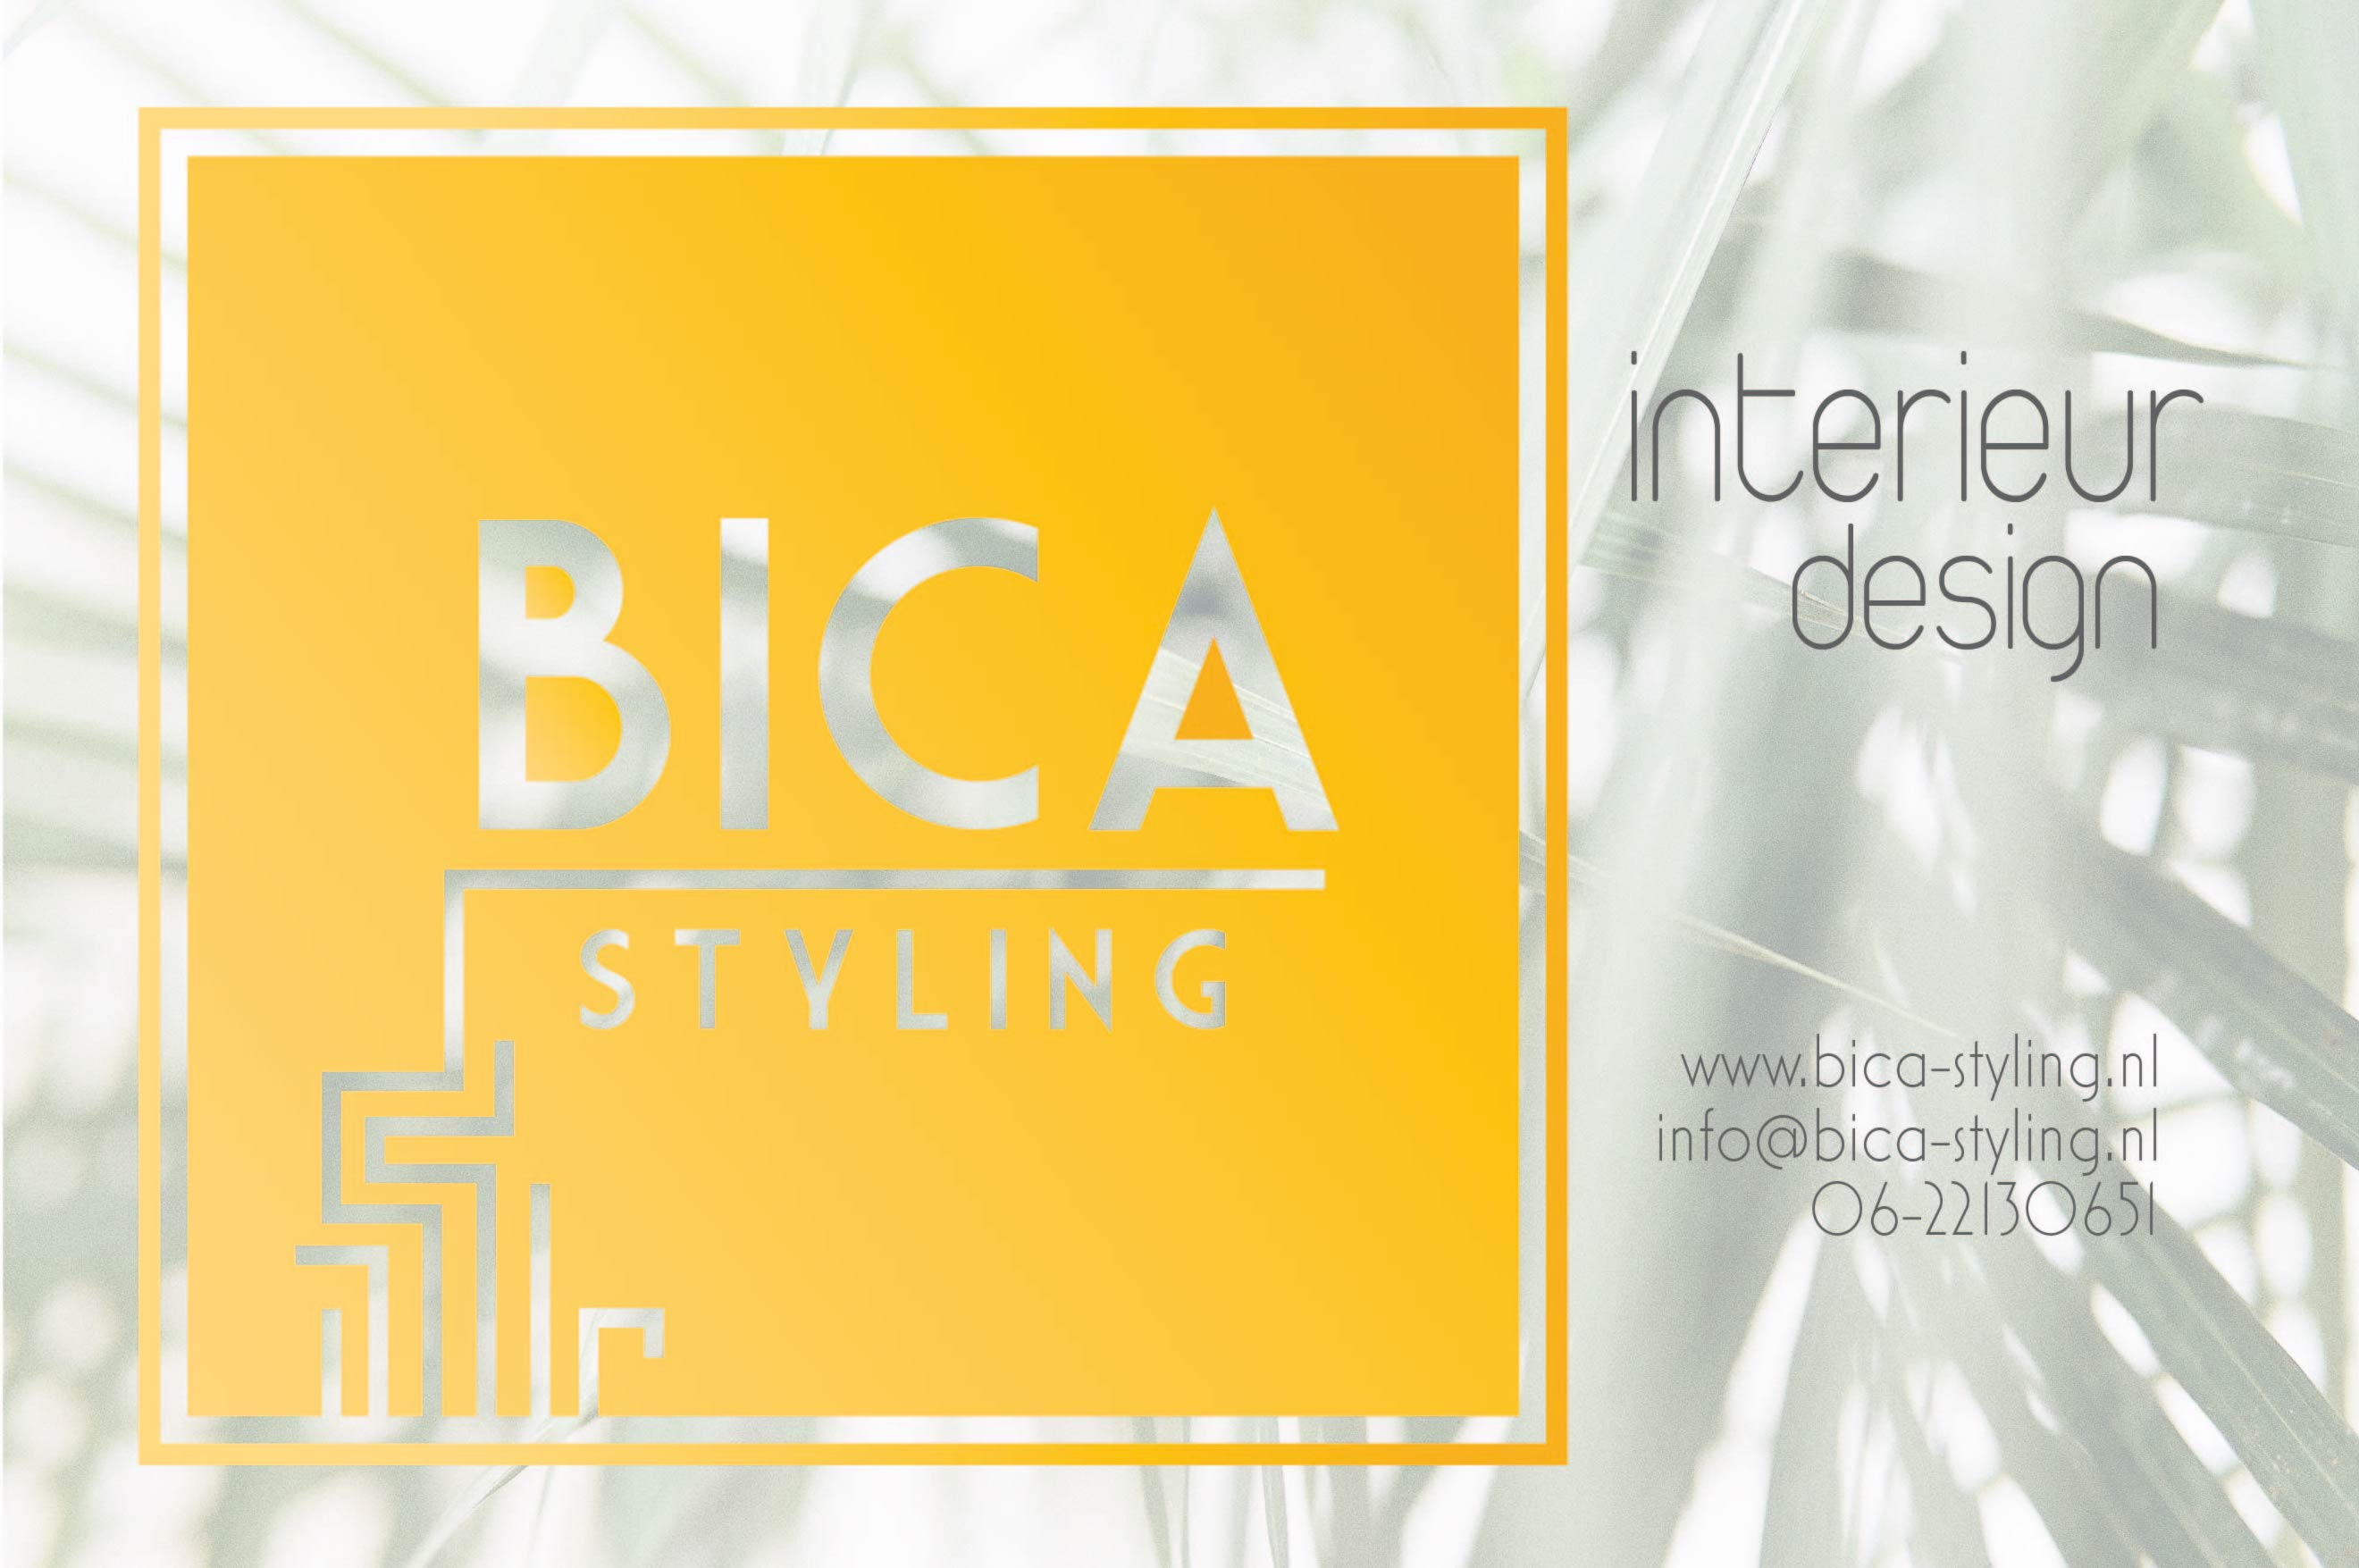 BICA styling interieurstyling interieurdesign